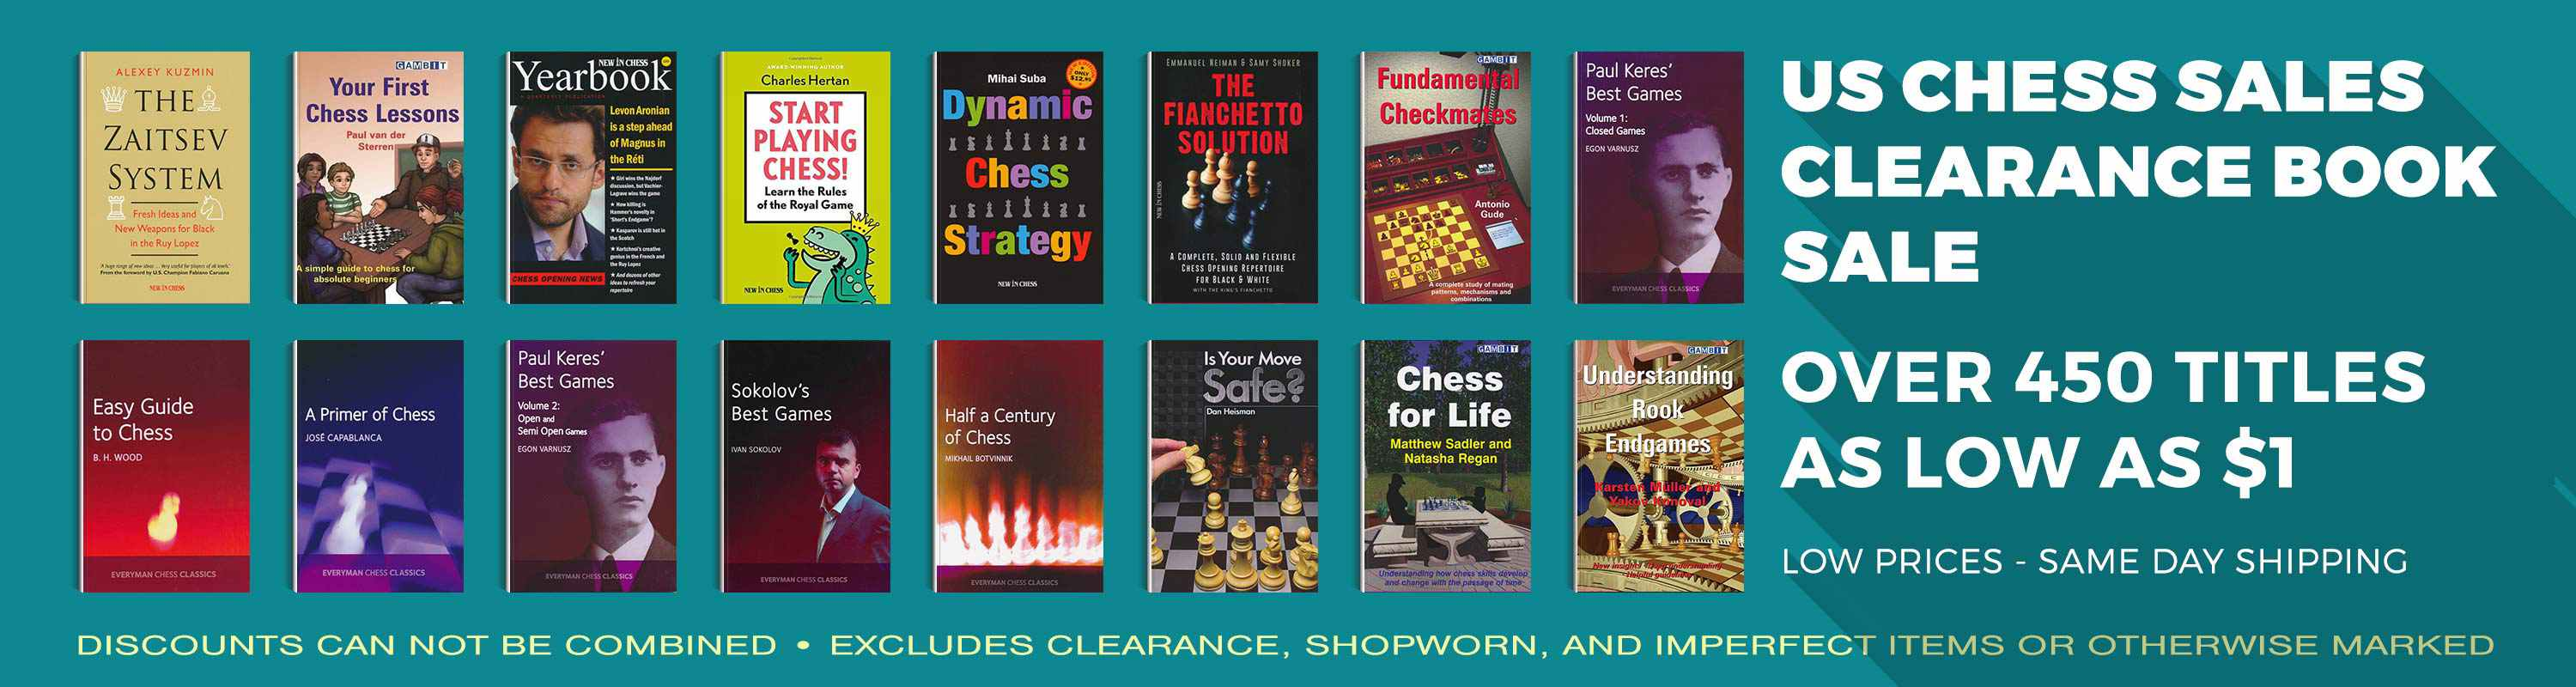 US Chess Sales Clearance Book Sale! Over 450 Titles as low as $1!